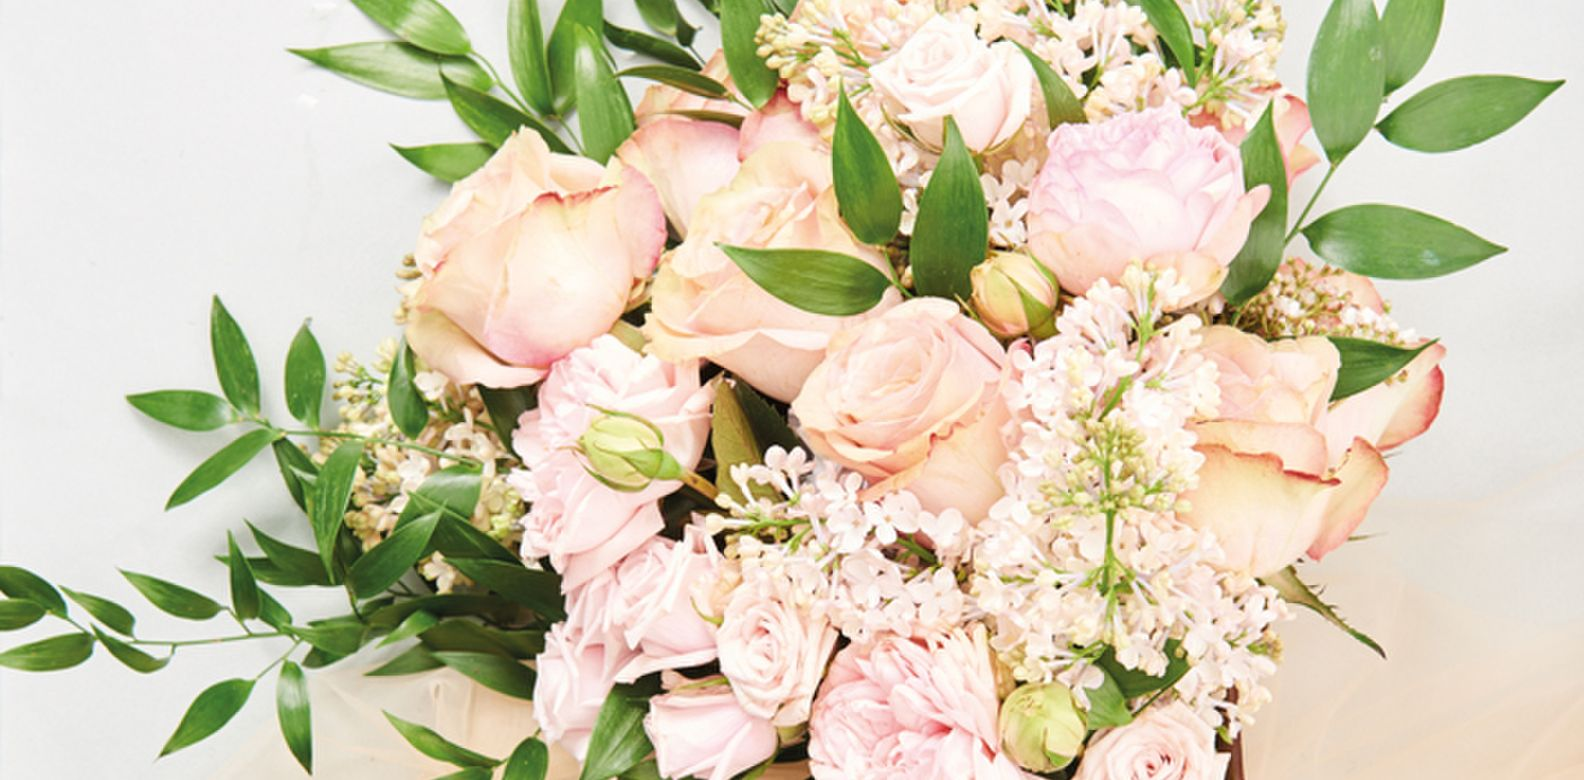 4 rosy bridal bouquets for your big day hong kong tatler 4 rosy bridal bouquets for your big day izmirmasajfo